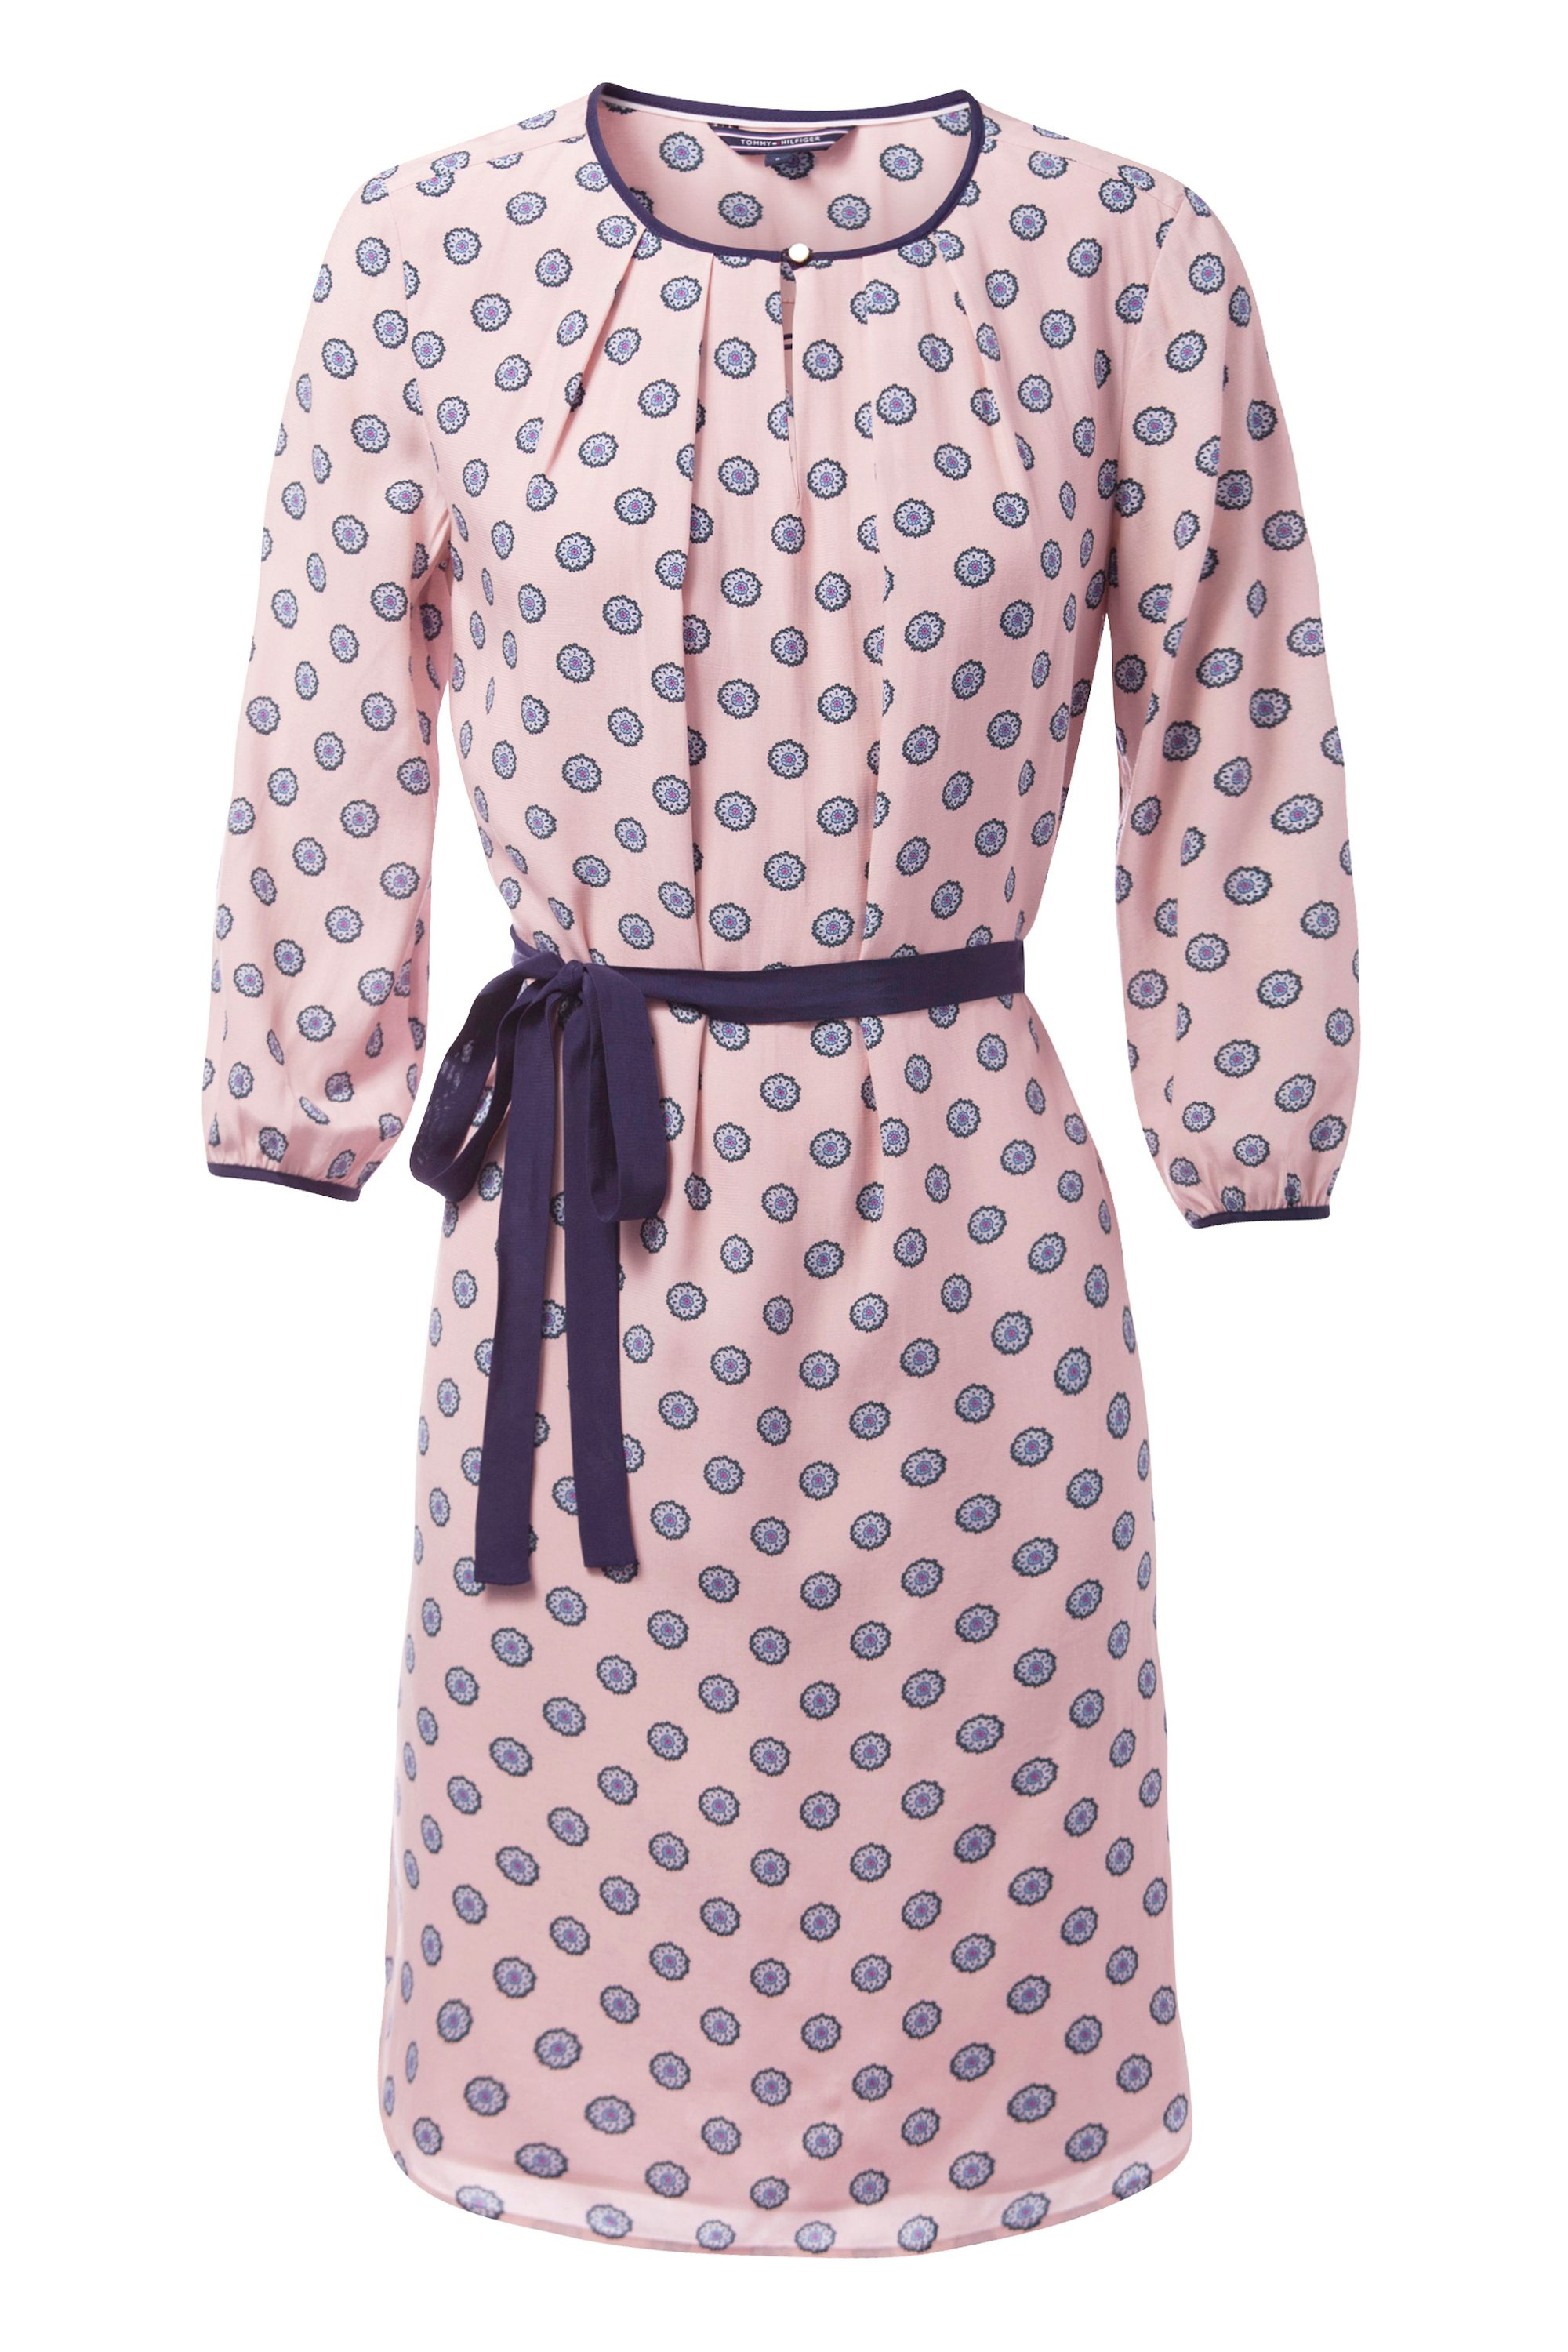 Tommy Hilfiger Arden Viscose Dress, Pink